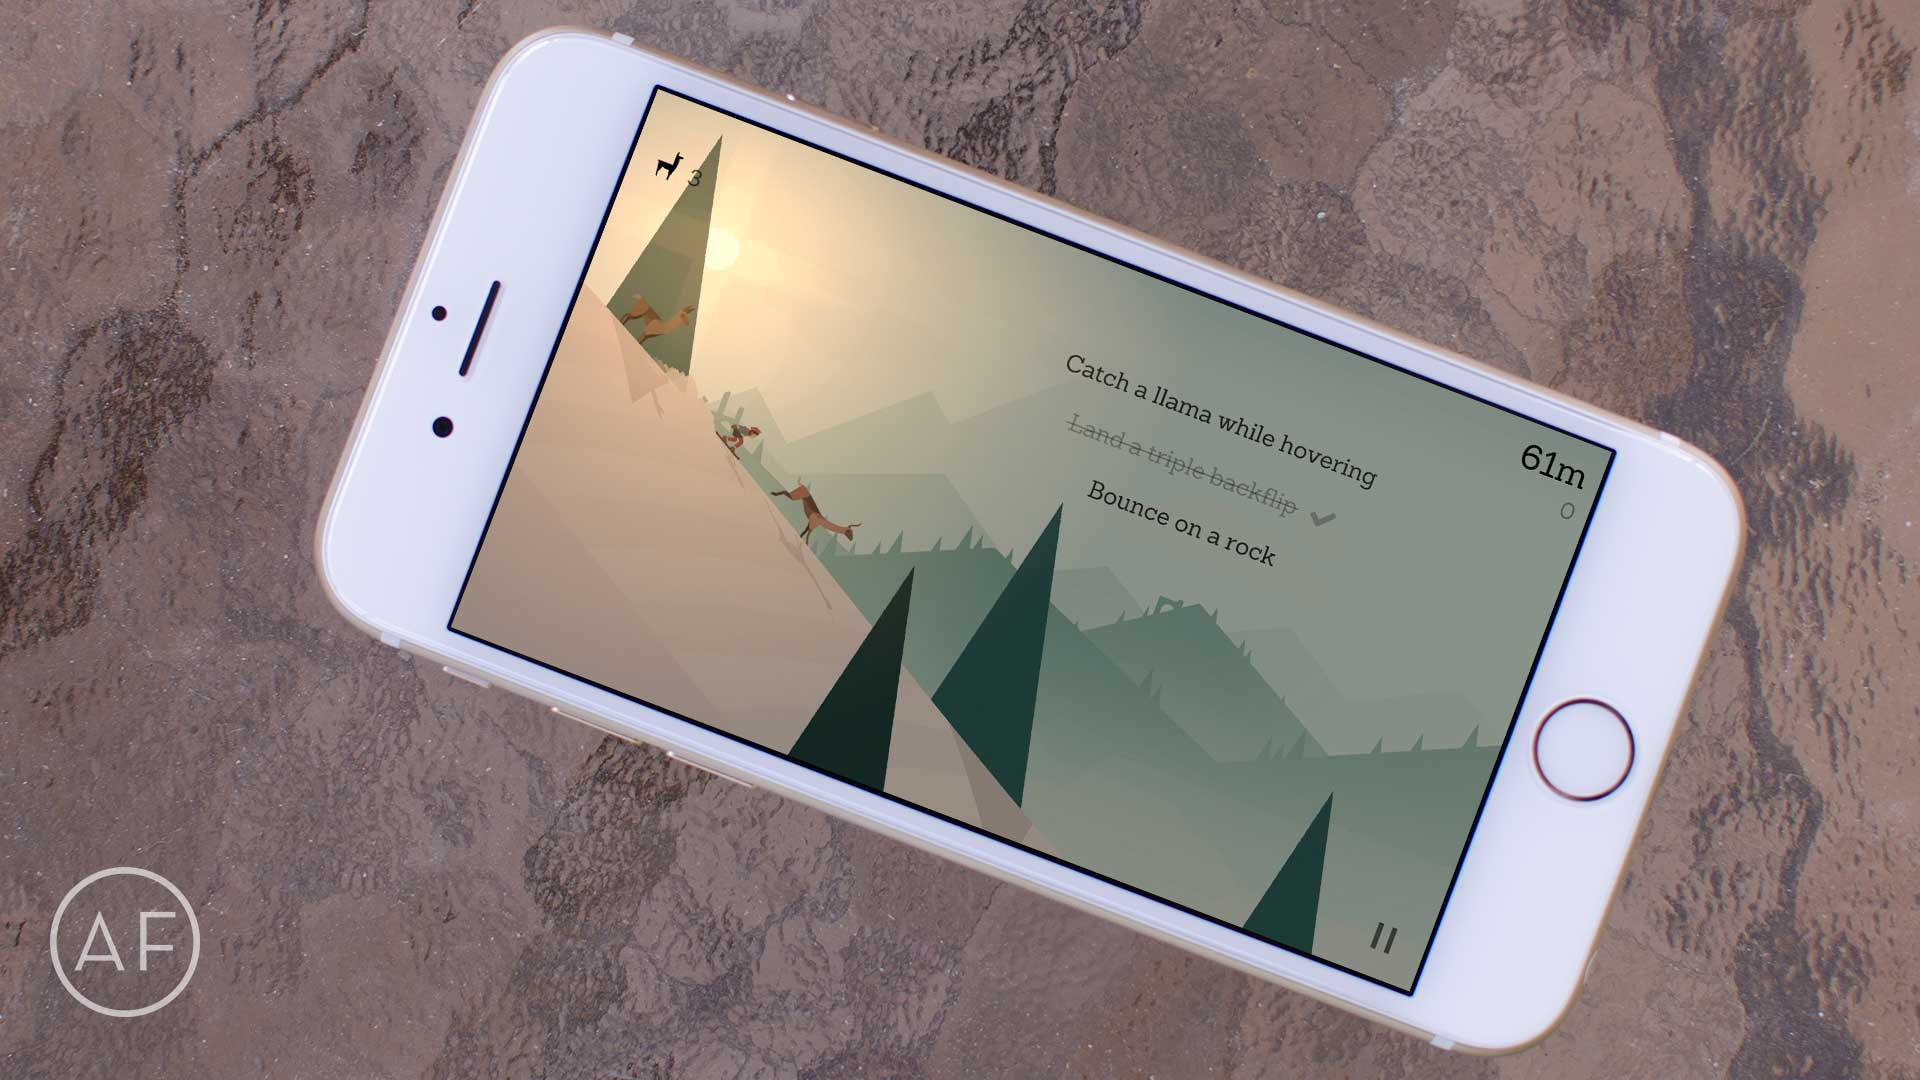 Here are 12 awesome iOS games, old and new, we think are definitely worth a try!